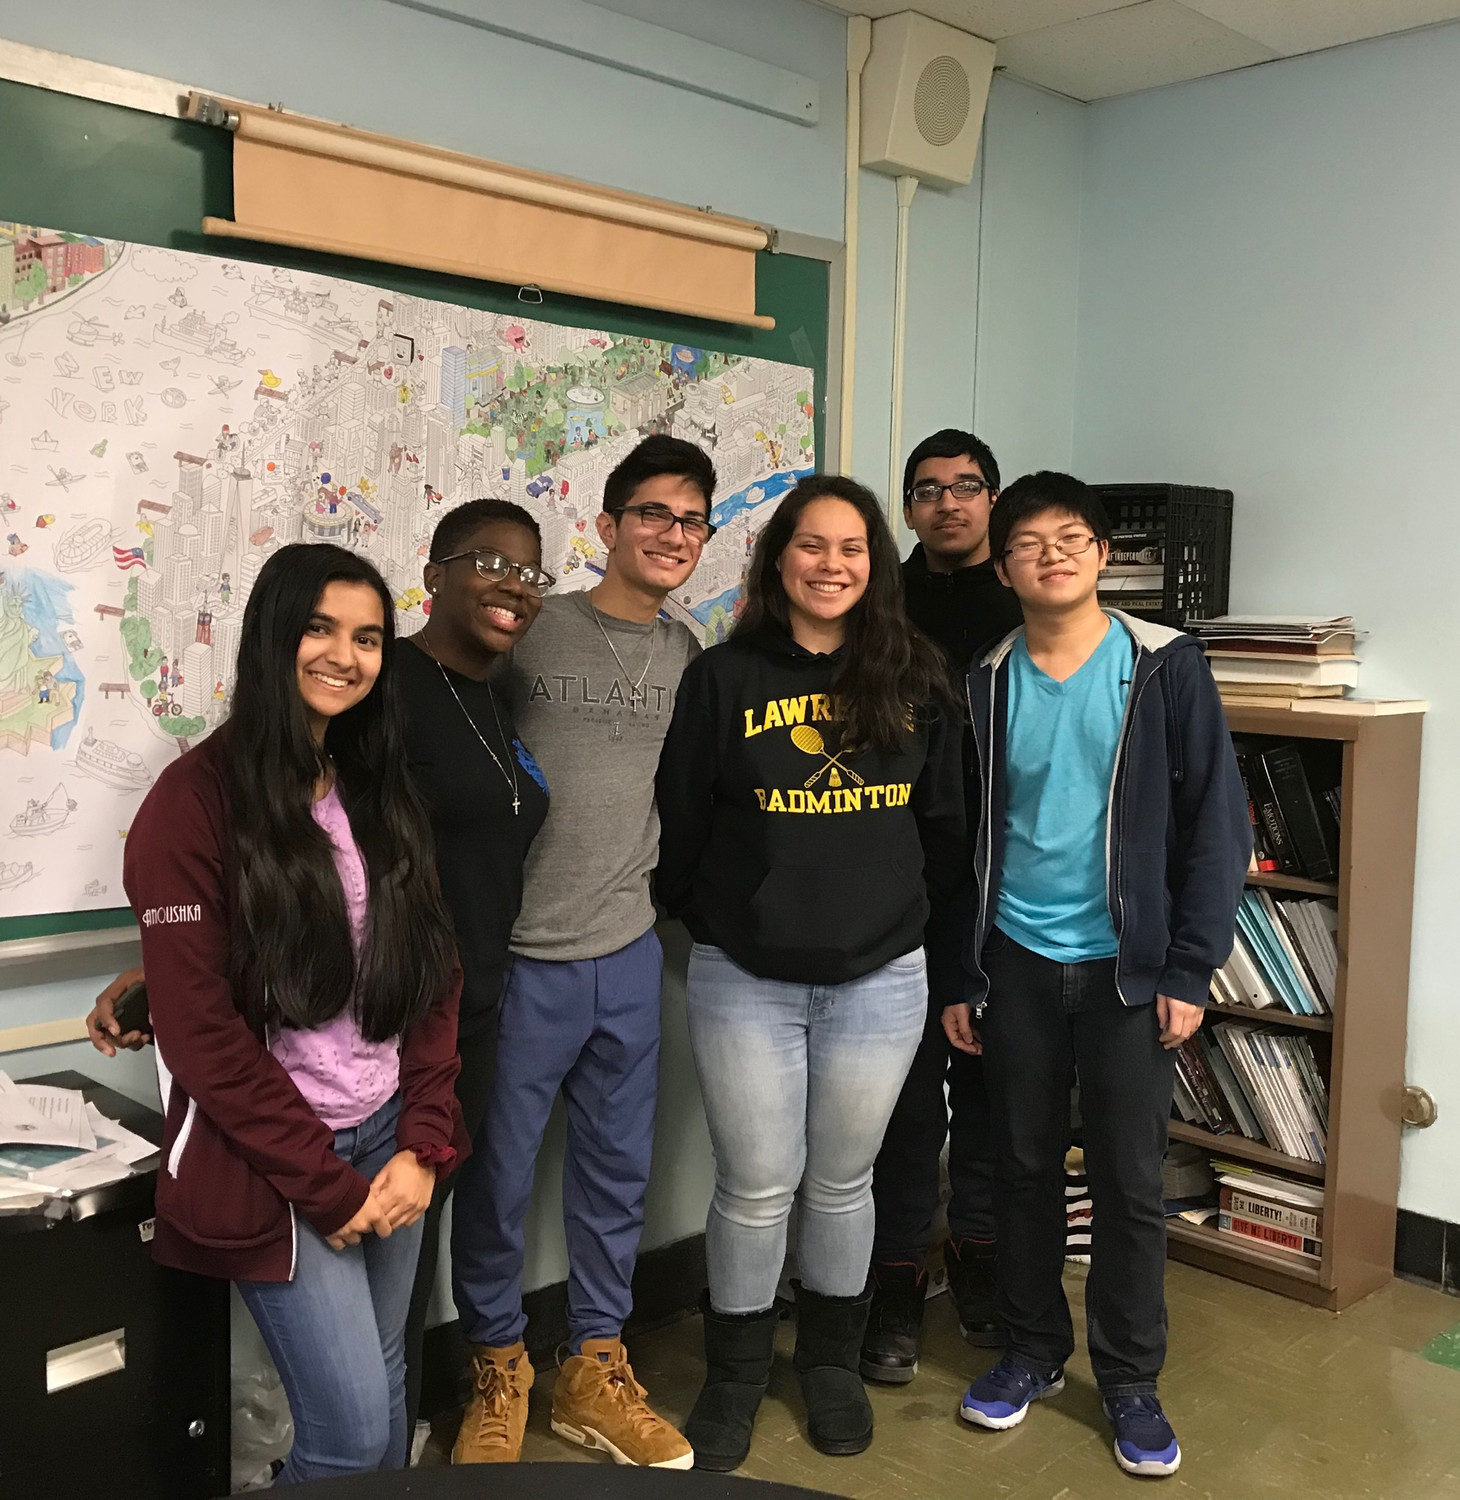 awrence High School students conducted high-level research that was presented at the Greater New York Junior Science & Humanities Symposium. From left Anoushka Guha, Ariana Brown, Nicholas Williams, Stacy Portillo, Zaiff Khan and John Chen.